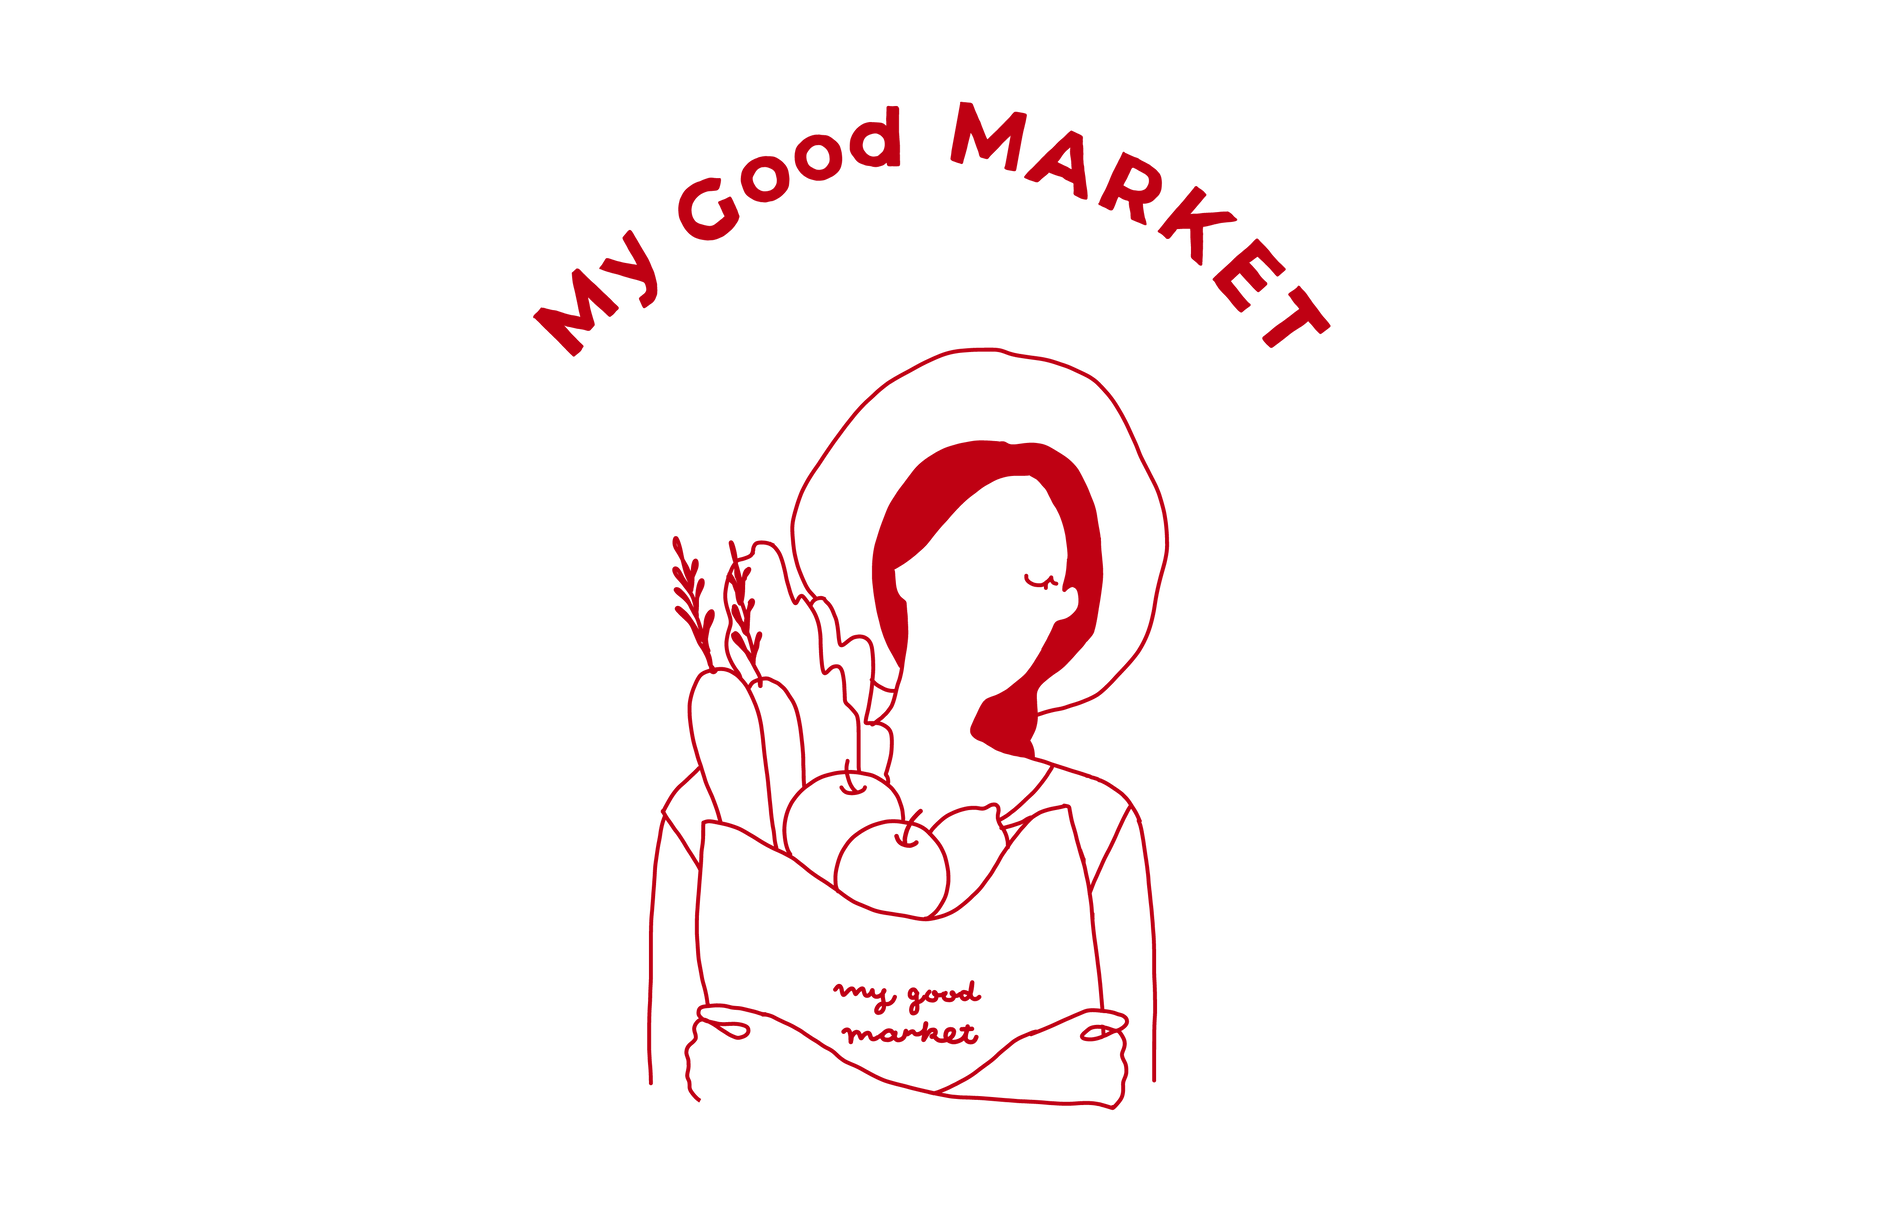 My Good MARKET